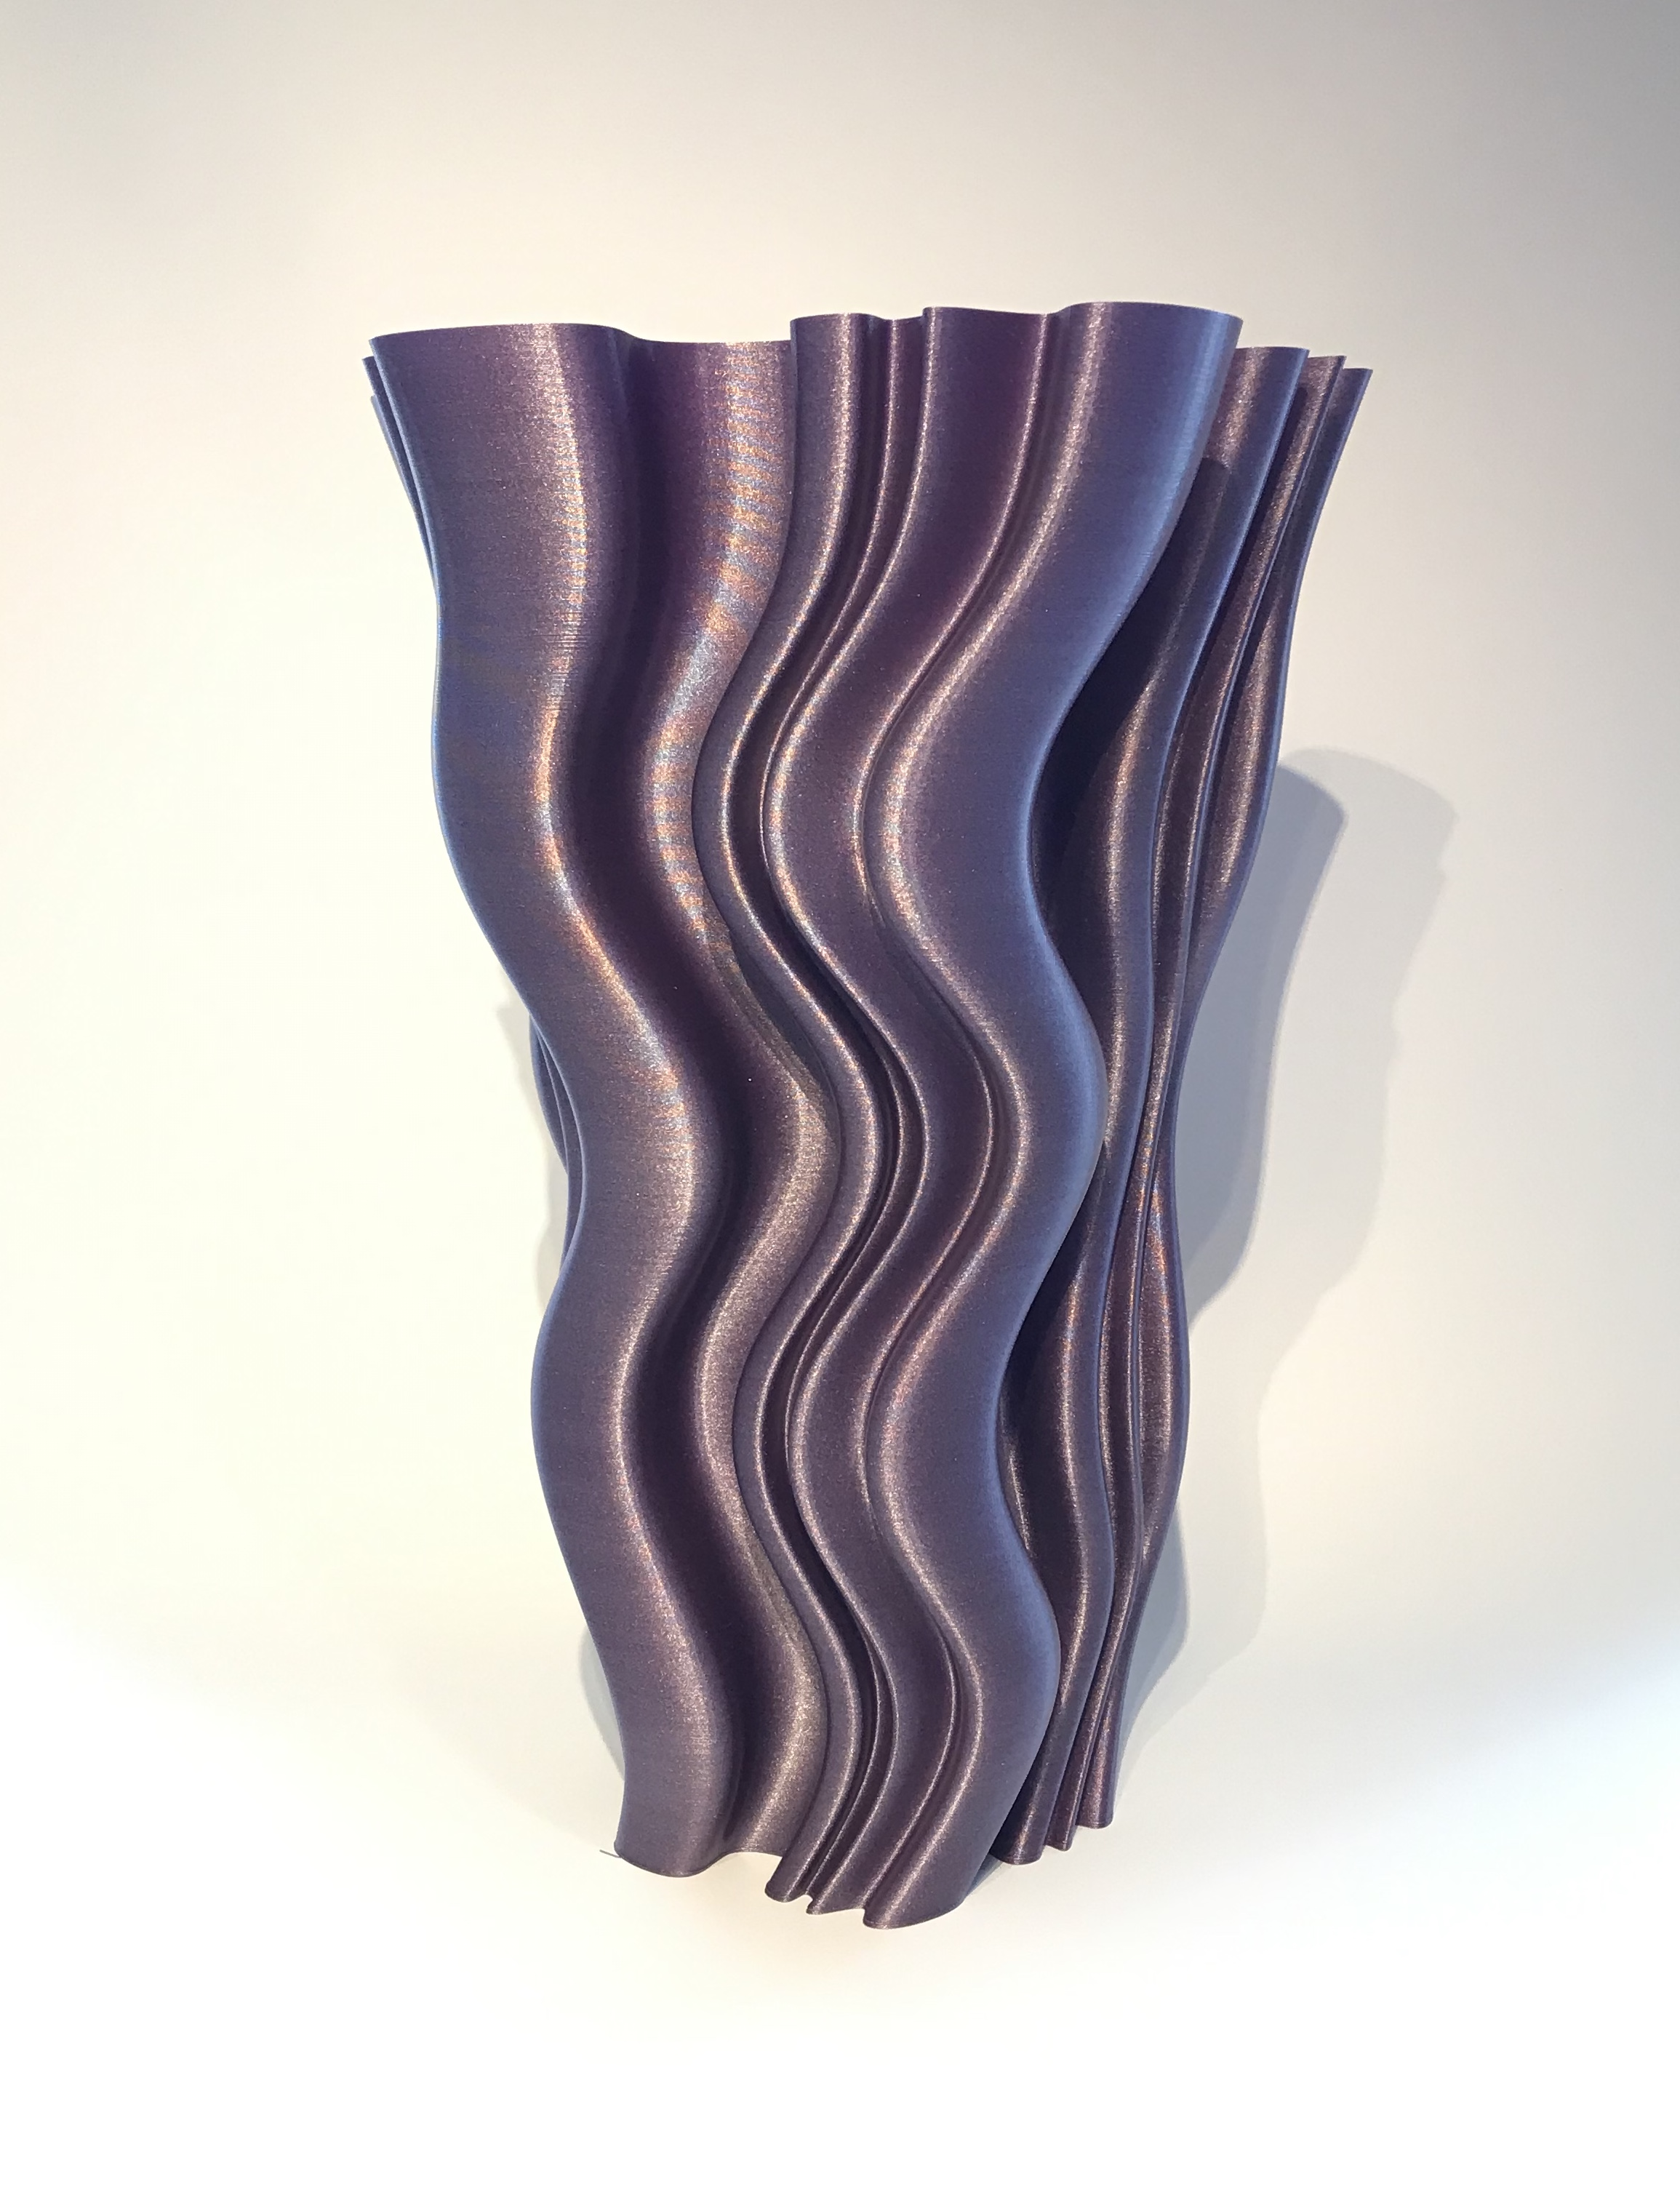 IMG_6193.jpg Download free STL file Super wavy vase • 3D printing object, Brithawkes